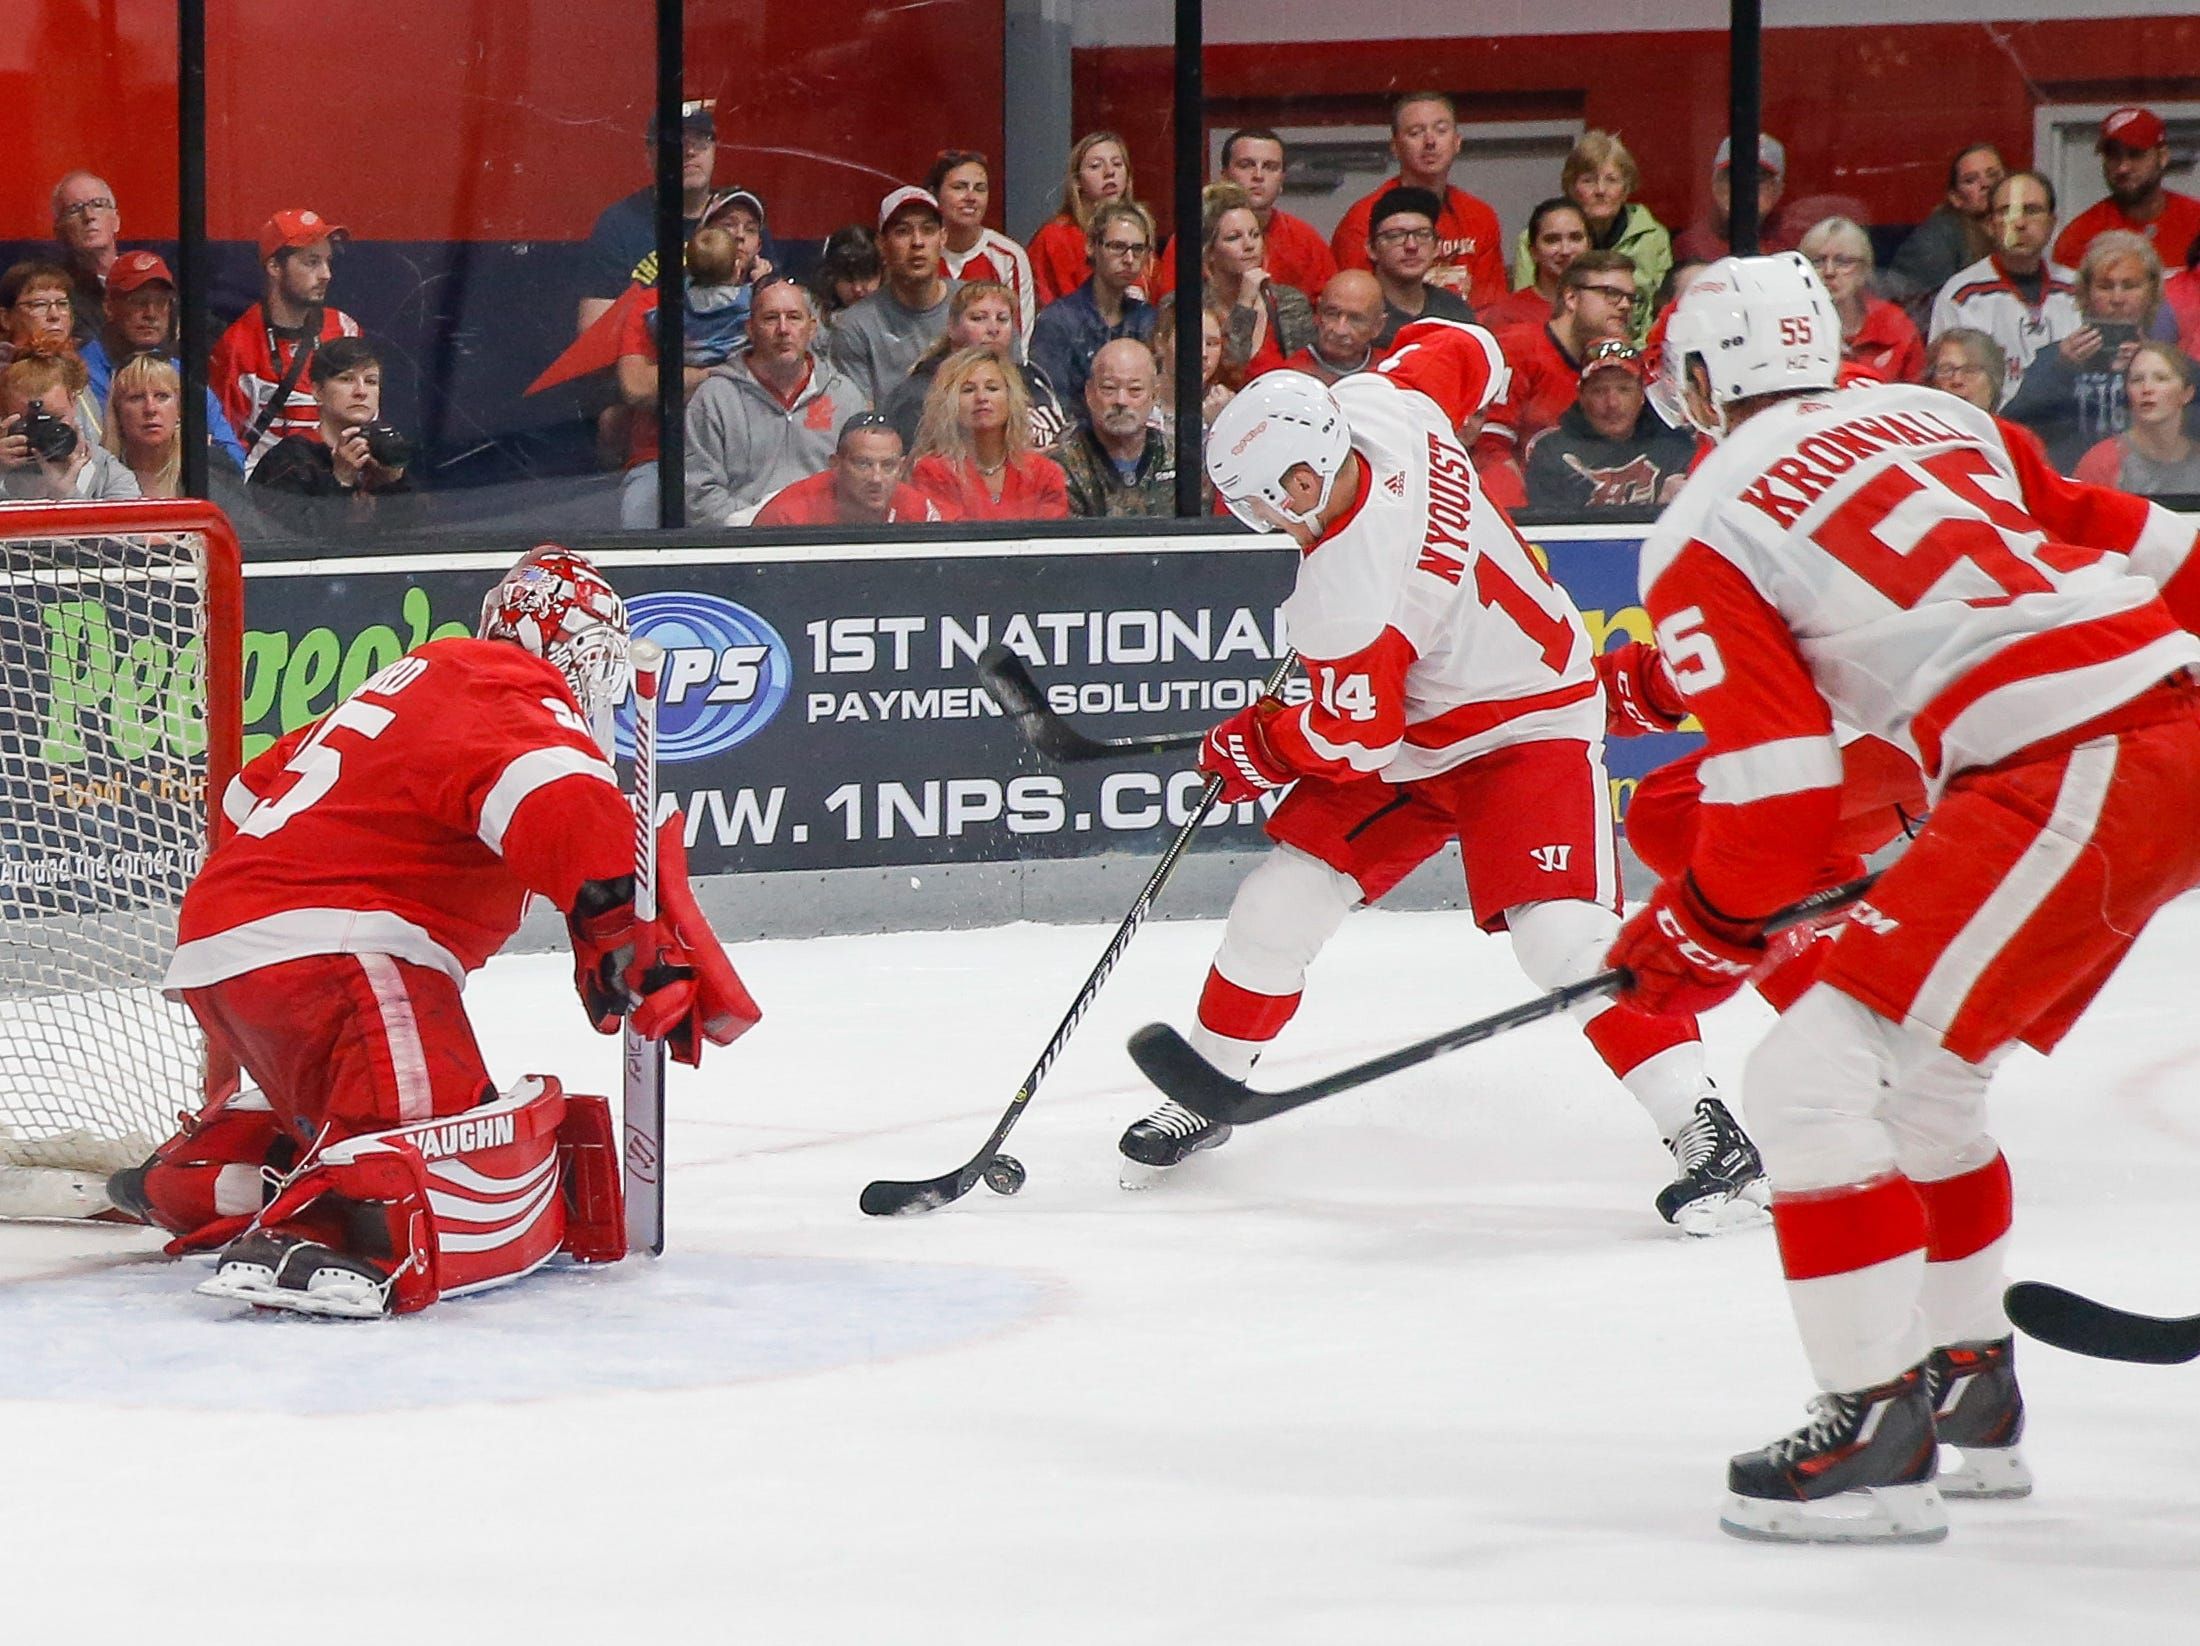 Gustav Nyquist battles defenders in an attempt to slip the puck past Team Red goaltender Jimmy Howard. He was not successful.